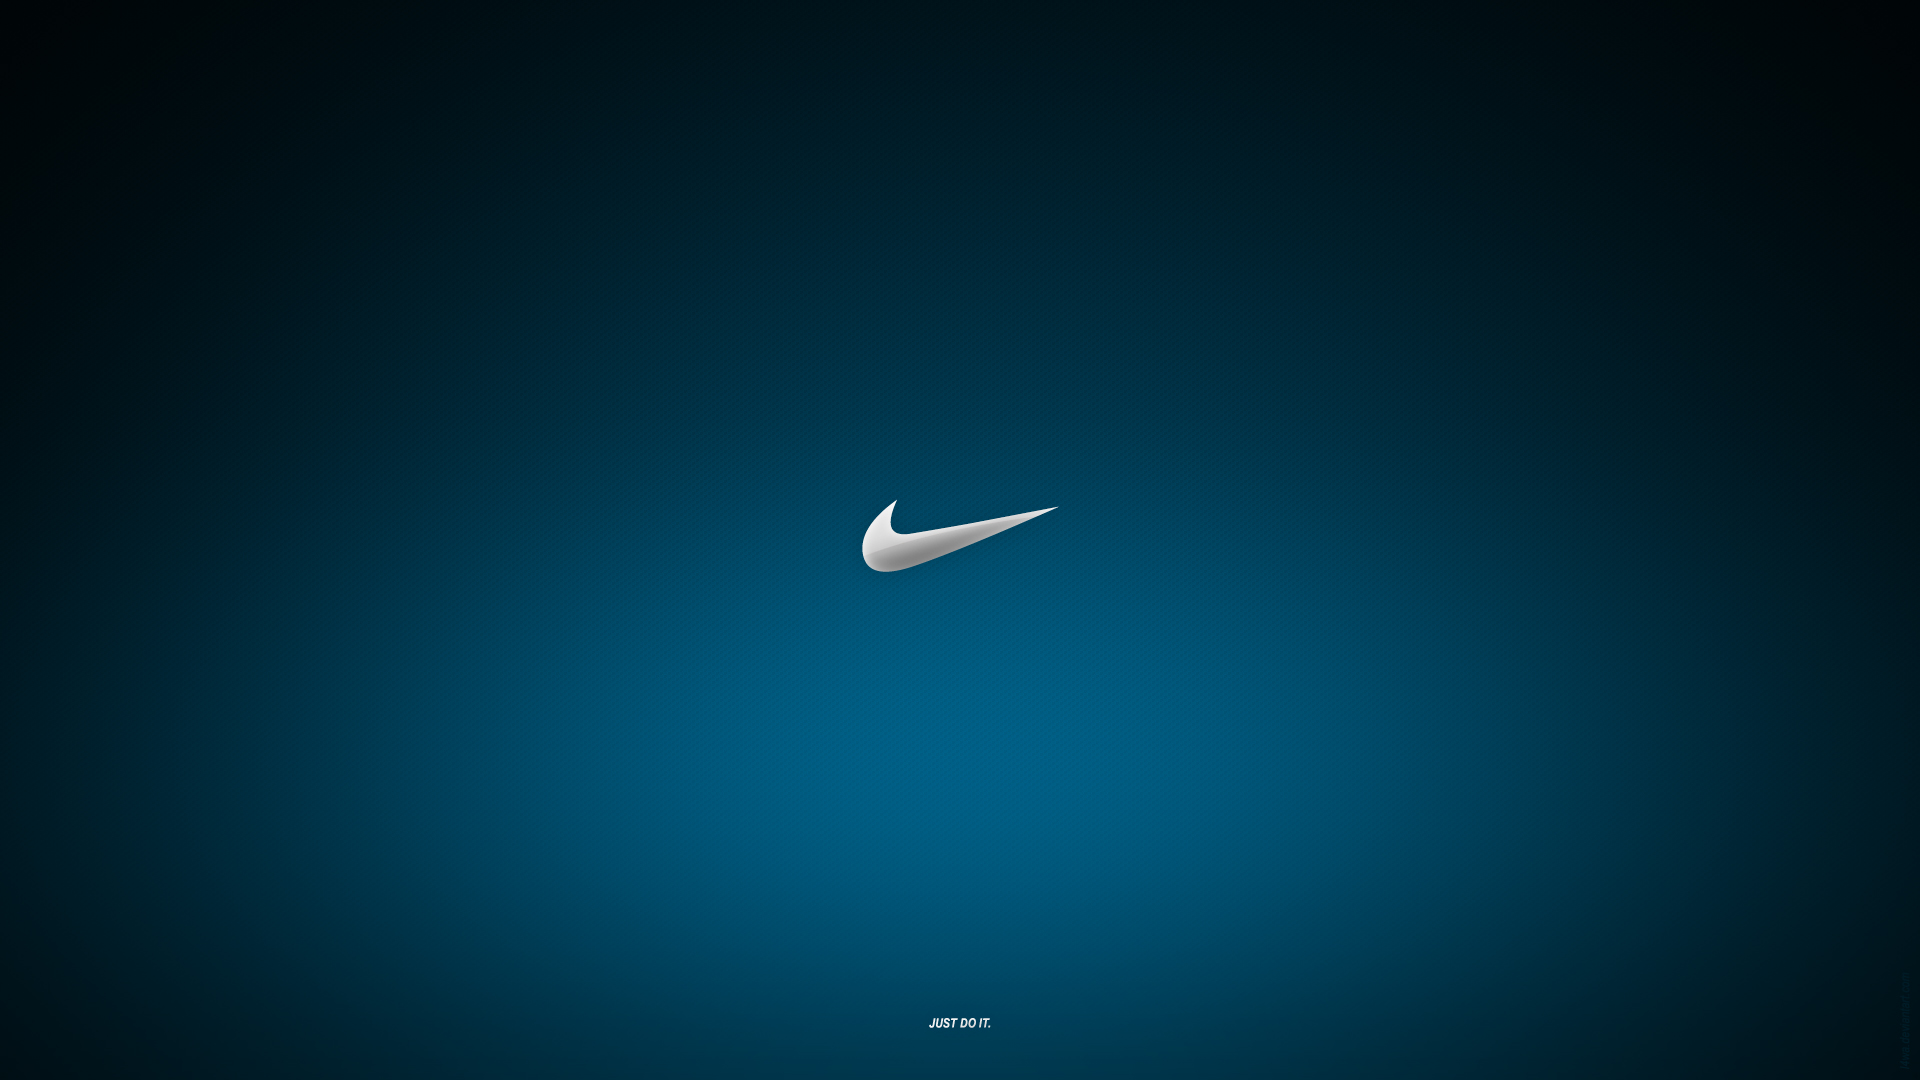 25 Impressive Nike Wallpapers For Desktop 1920x1080